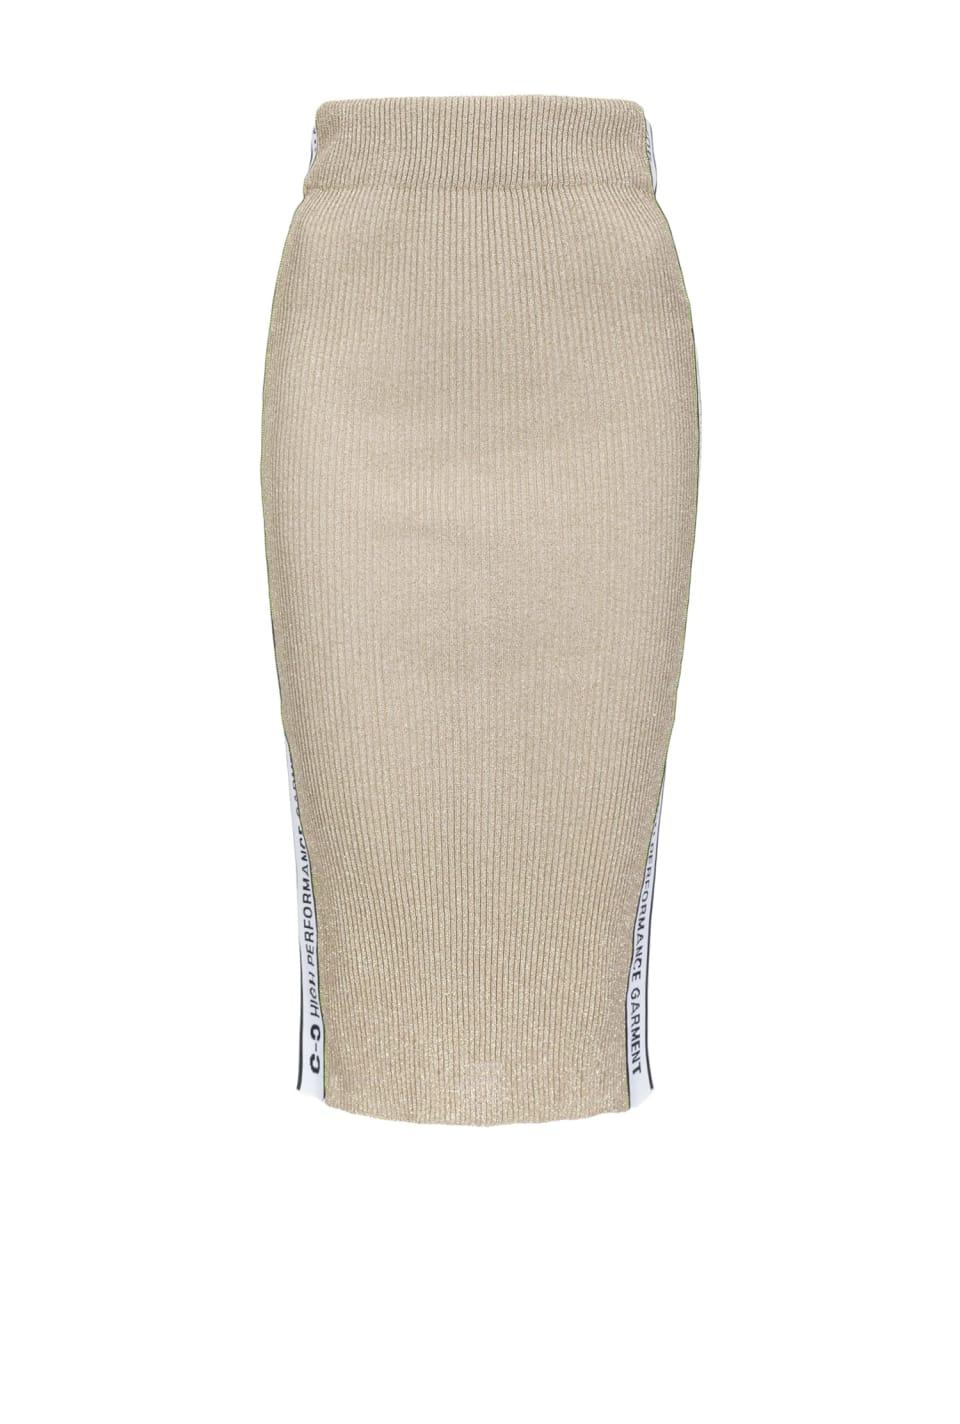 Lurex knit skirt